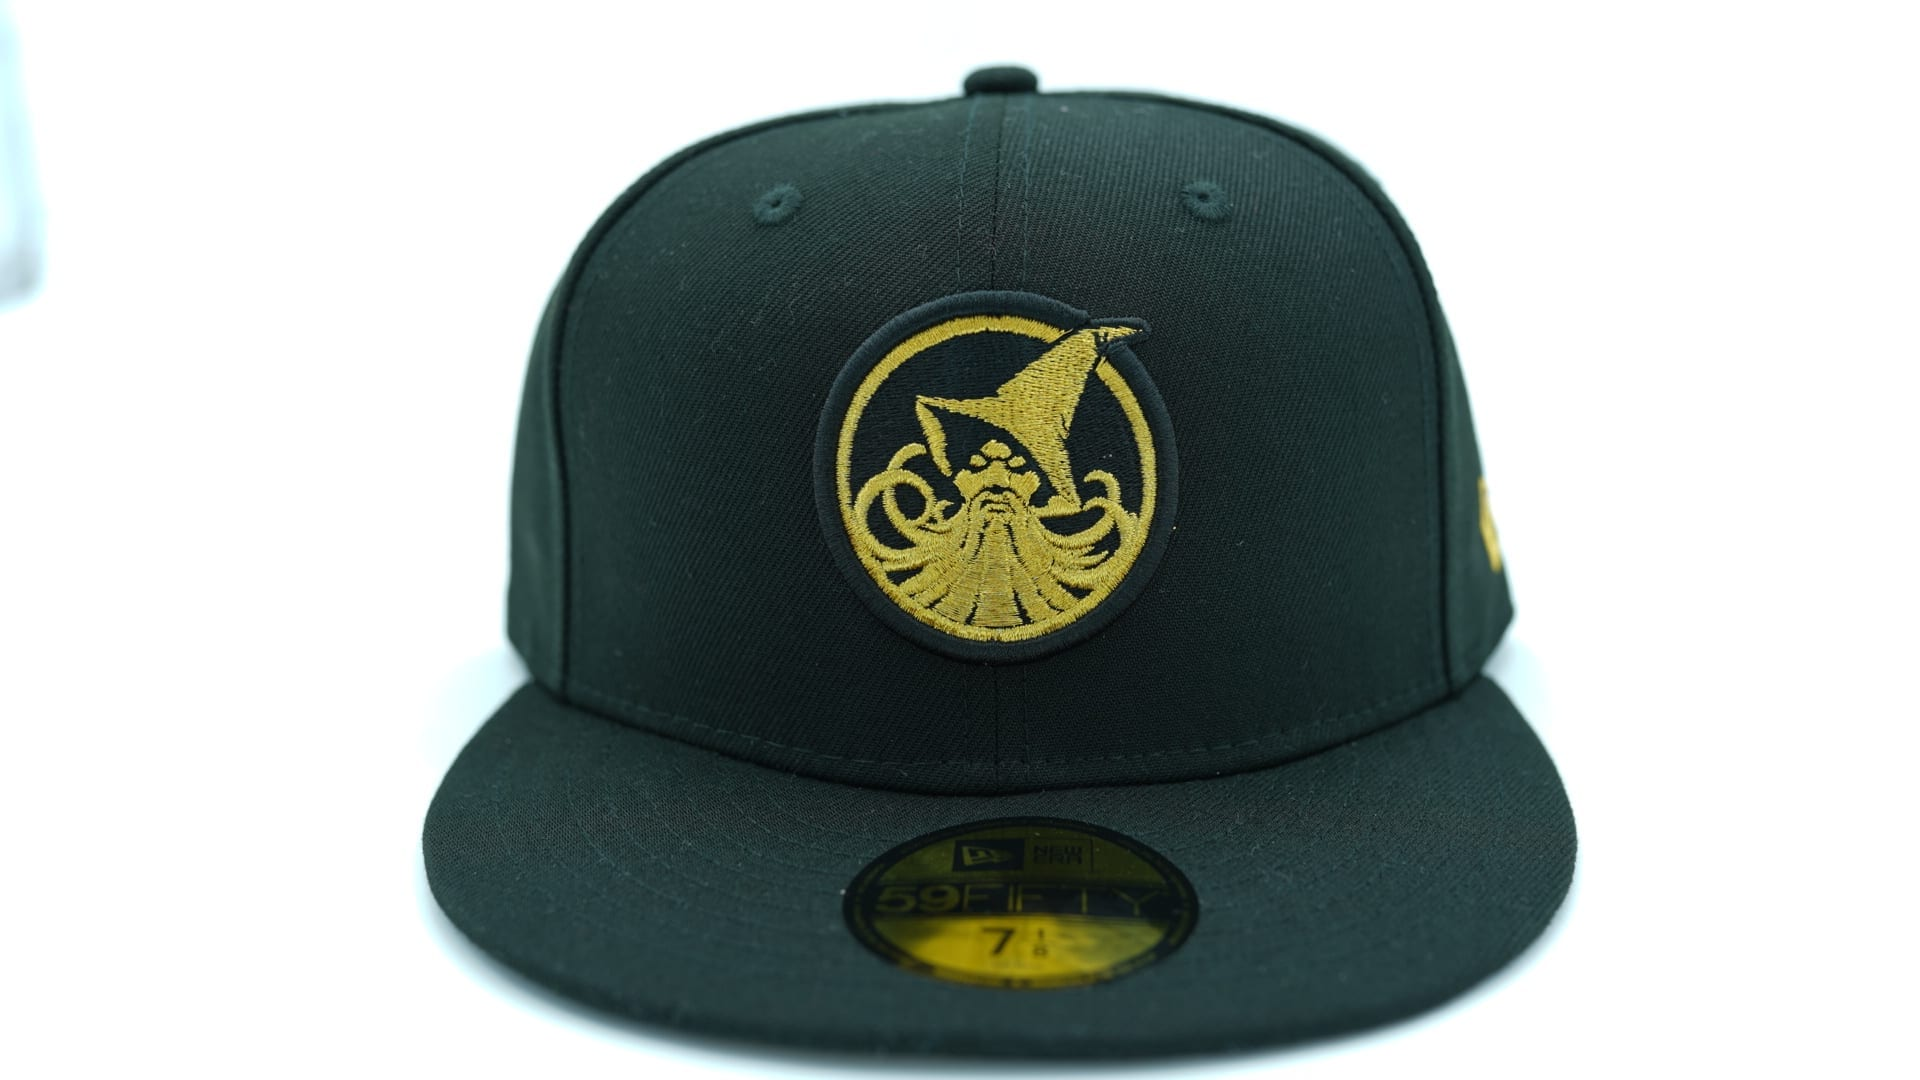 New York Jets Logo Elements Collection 59FIFTY Fitted Cap by NEW ERA x NFL 272d6bfbca1